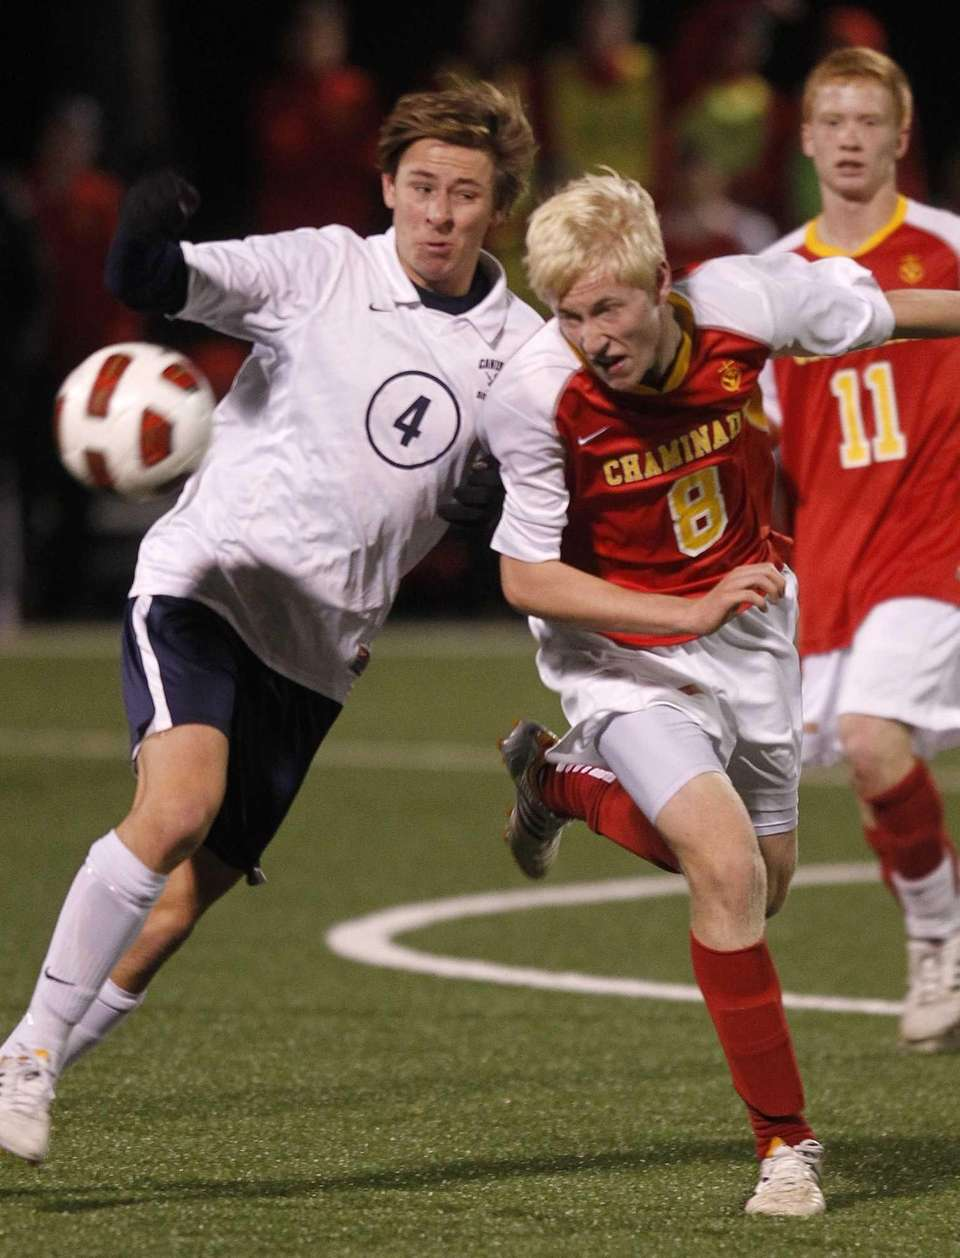 Chaminade's James Brady battles for the ball with